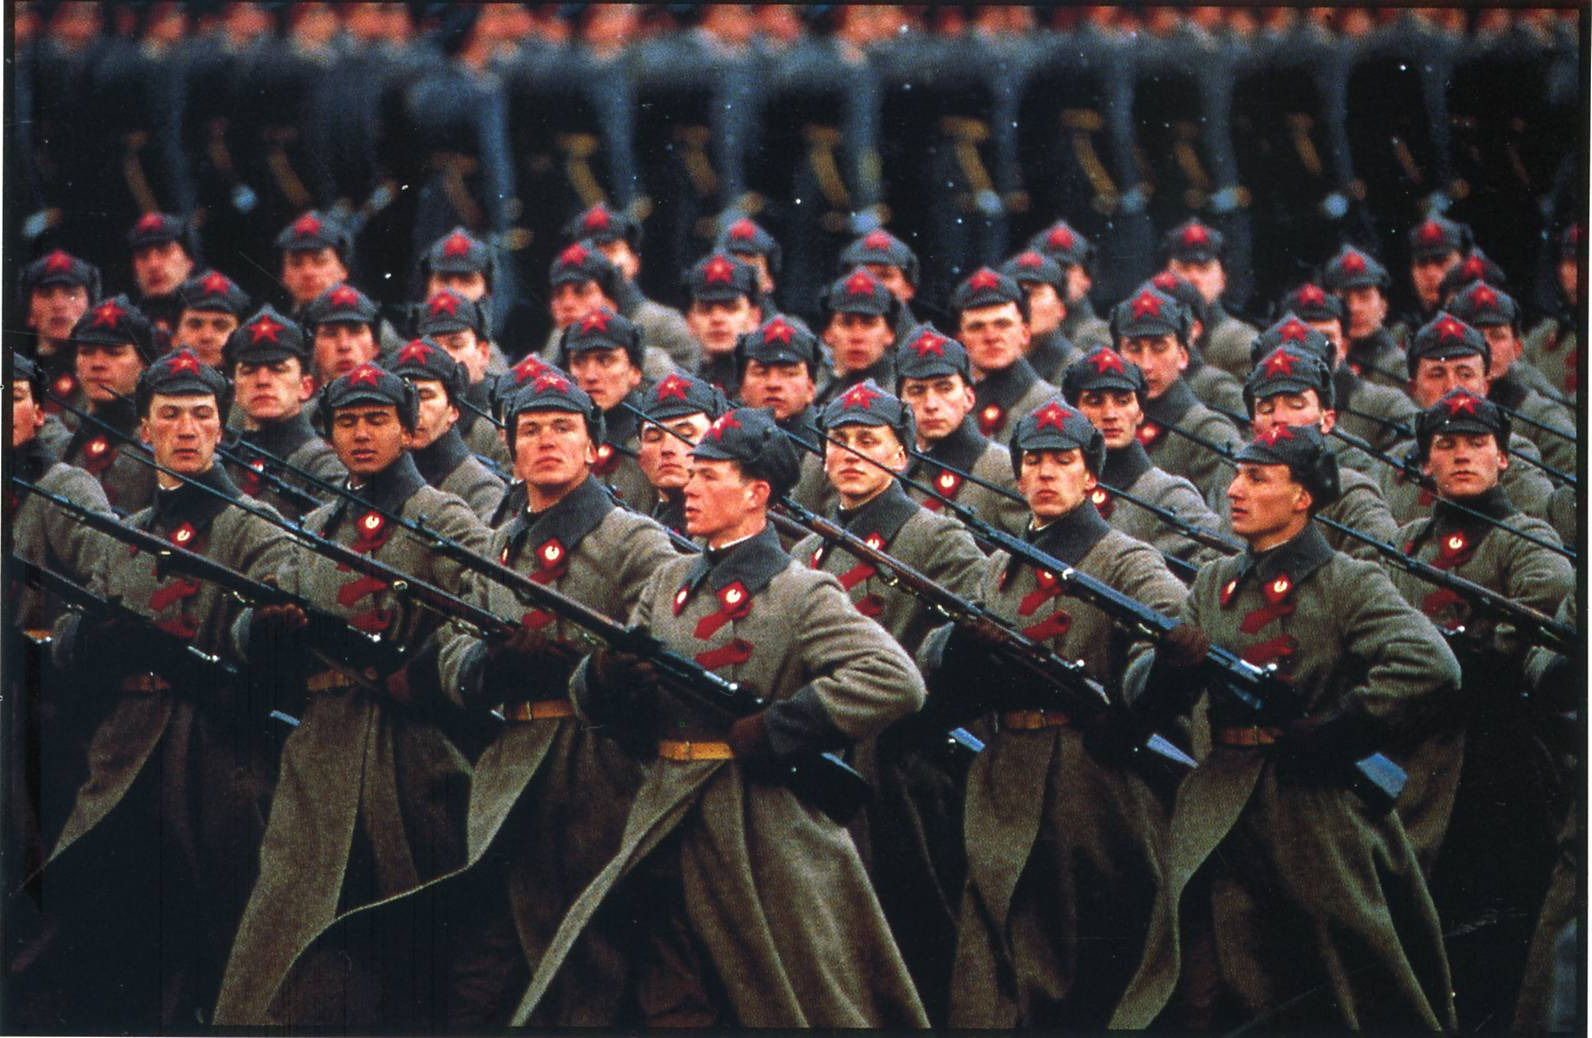 Rifles Of Russian Army Hd Wallpaper: Soldier, Men, Red Army, Parade, Rifles, Bayonette